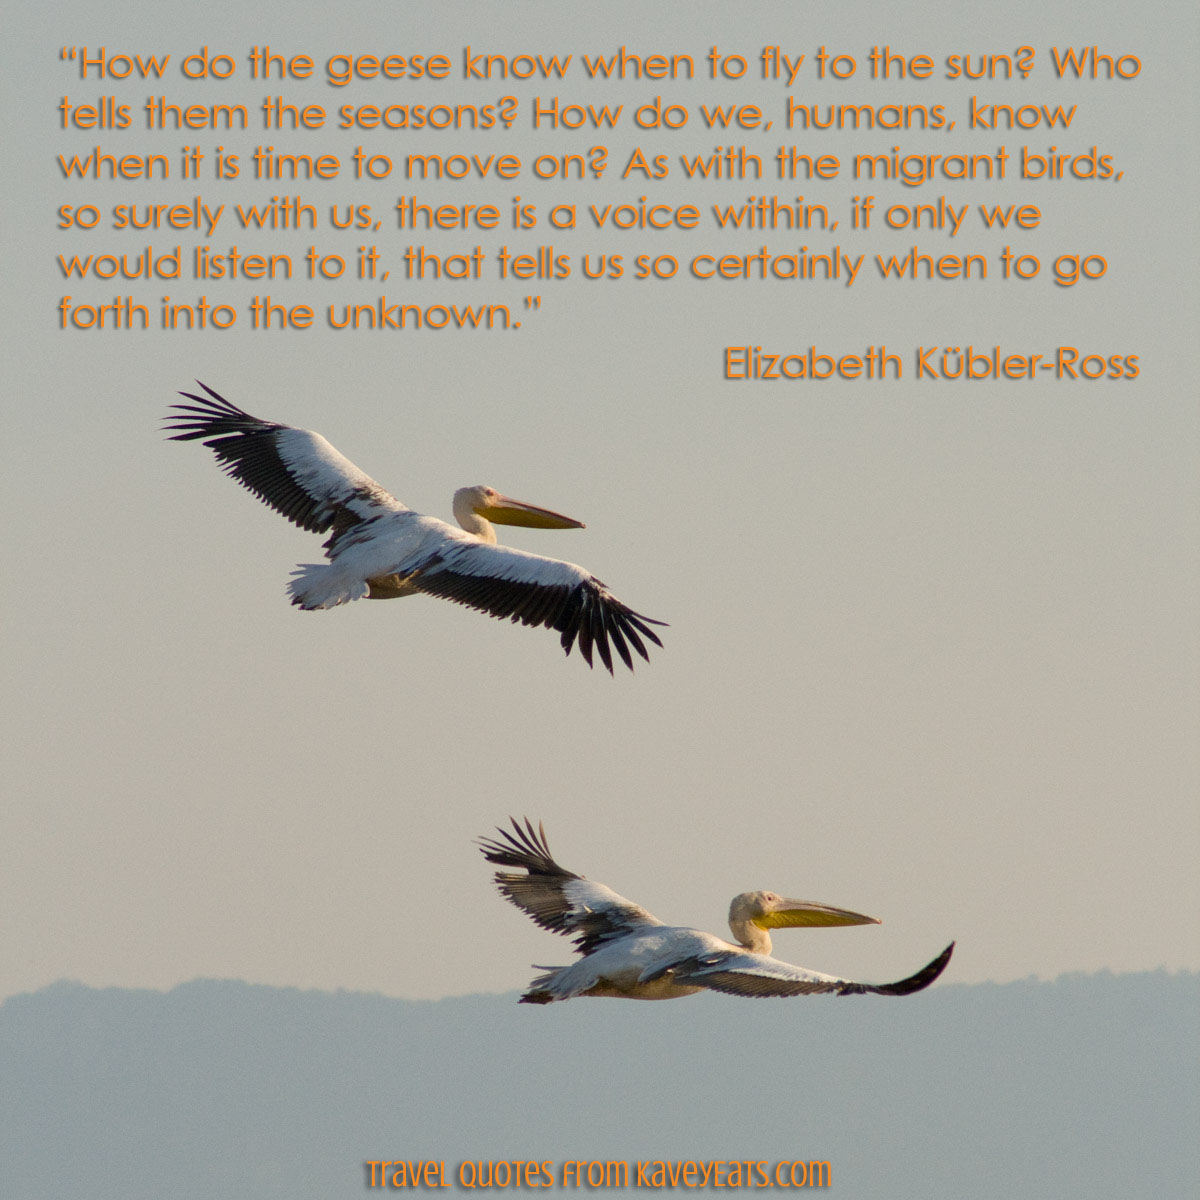 """How do the geese know when to fly to the sun? Who tells them the seasons? How do we, humans, know when it is time to move on? As with the migrant birds, so surely with us, there is a voice within, if only we would listen to it, that tells us so certainly when to go forth into the unknown."" Elizabeth Kübler-Ross"